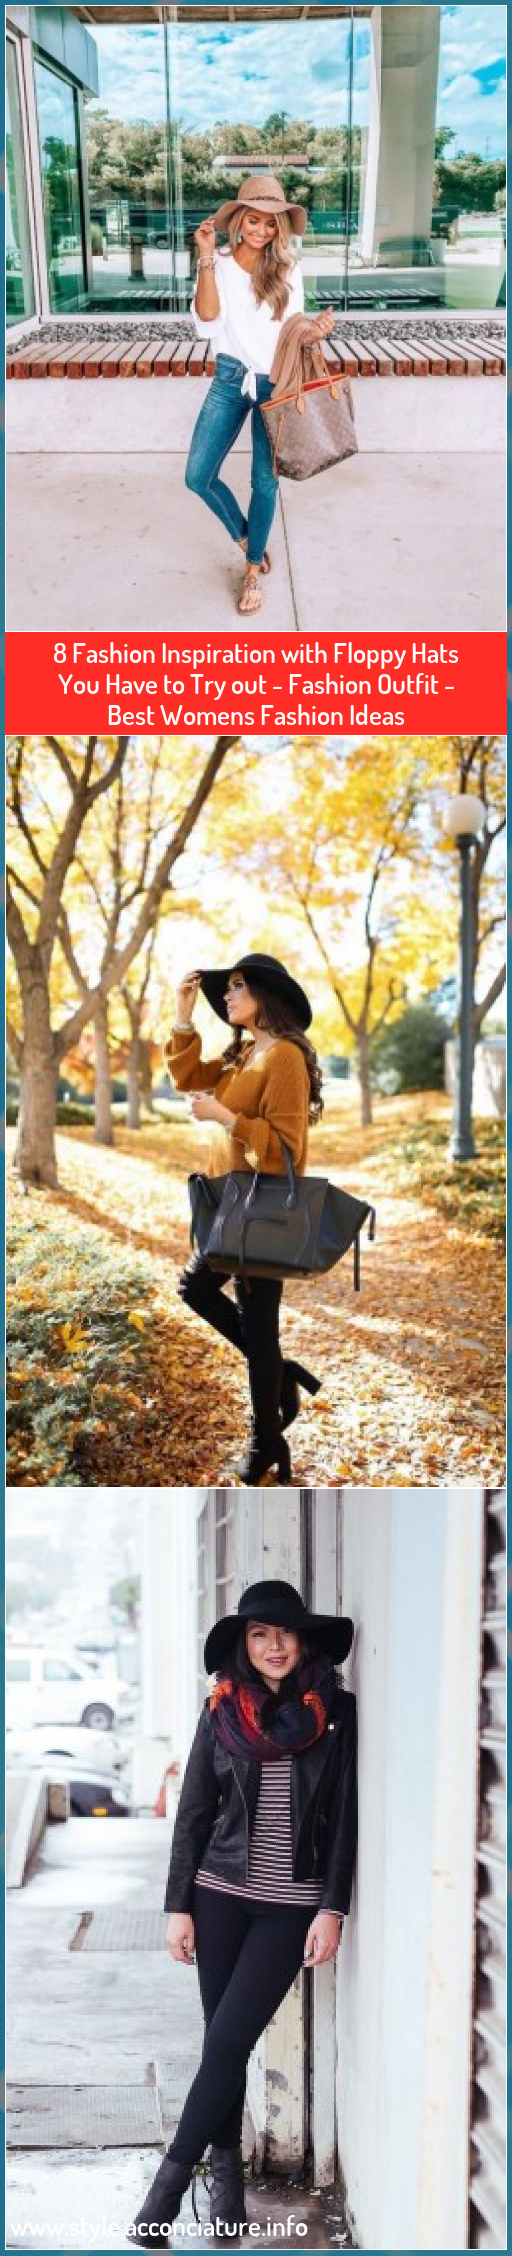 8 Fashion Inspiration with Floppy Hats You Have to Try out - Fashion Outfit - Best Womens Fashion Ideas #Fashion #Inspiration #with #Floppy #Hats #You #Have #Try #out #Fashion #Outfit #Best #Womens #Fashion #Ideas